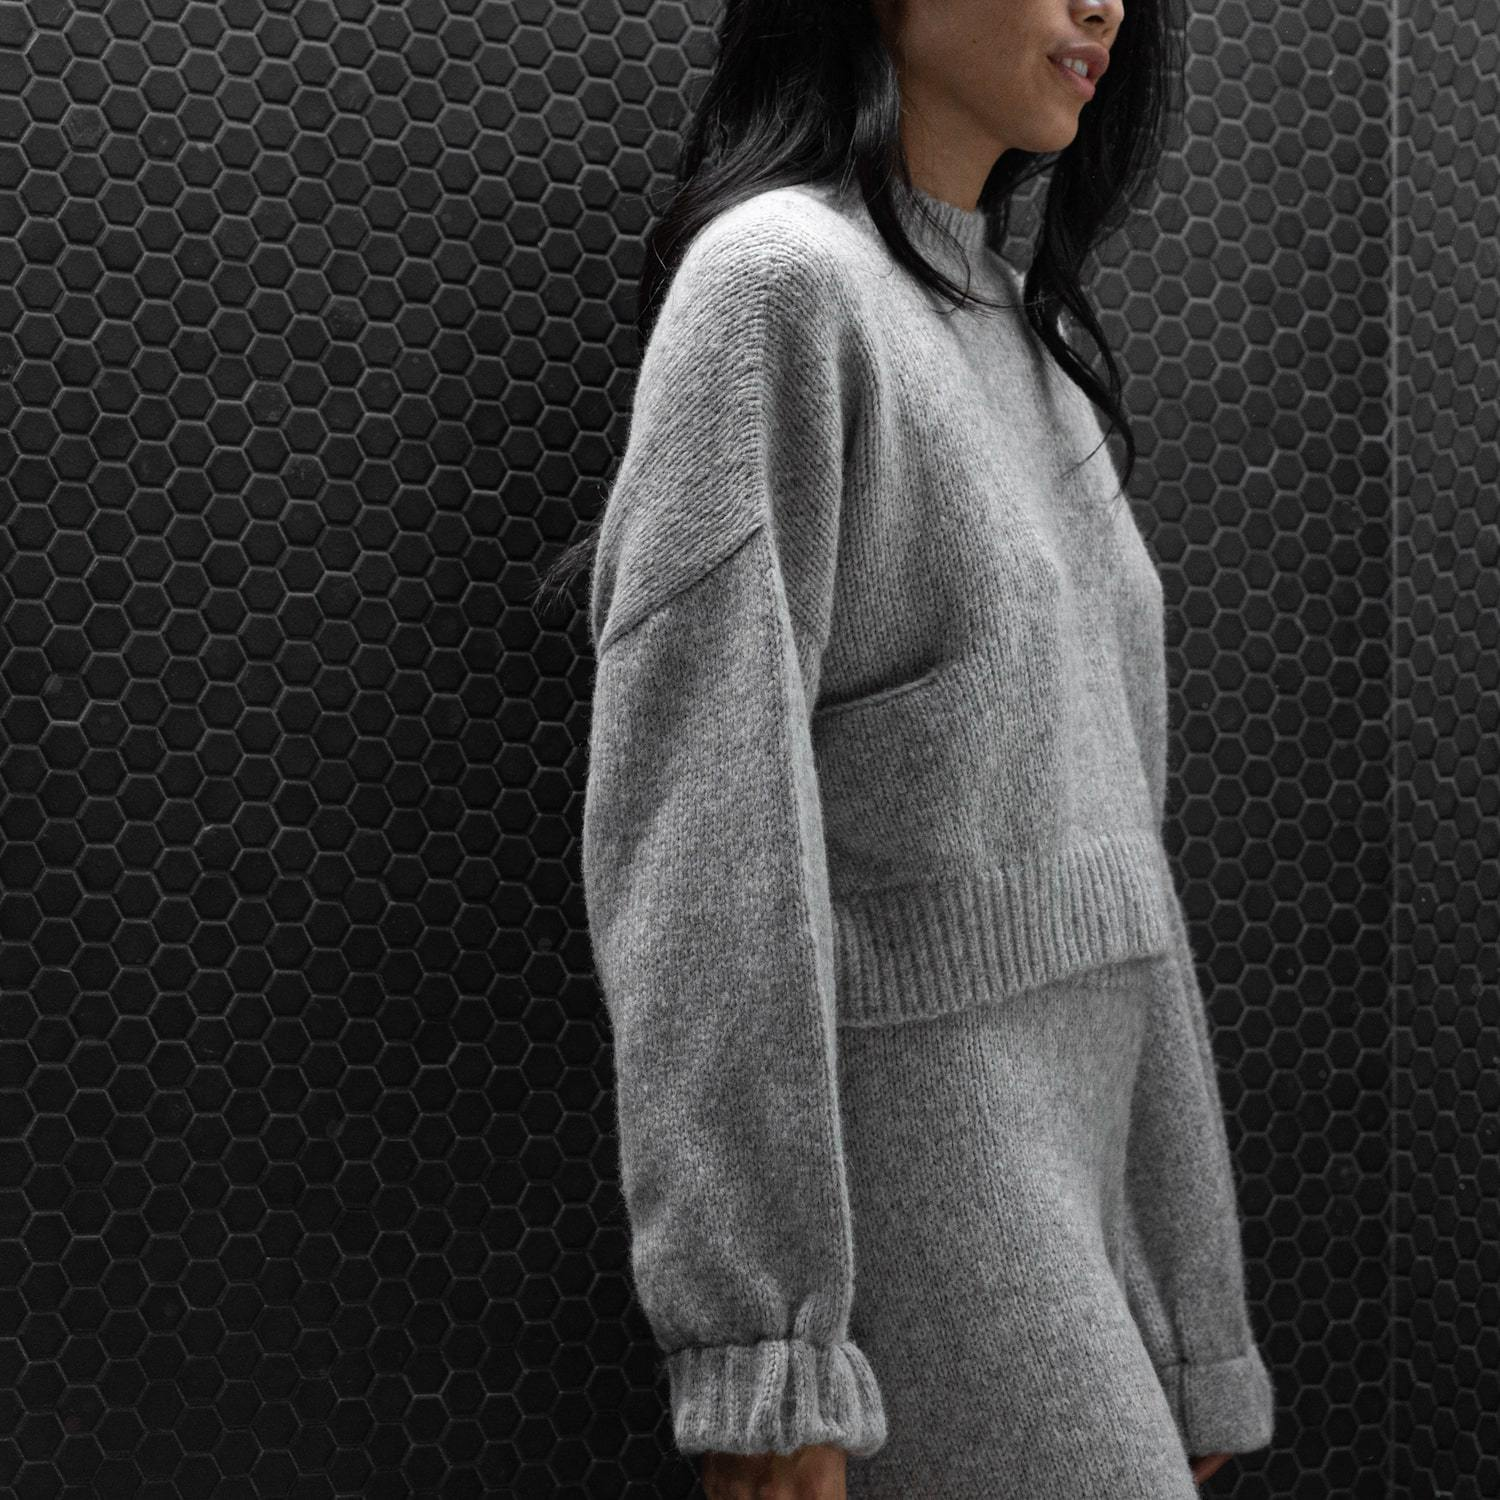 Lunya Sleepwear Cozy Alpaca Knit Pullover - #Heather Grey